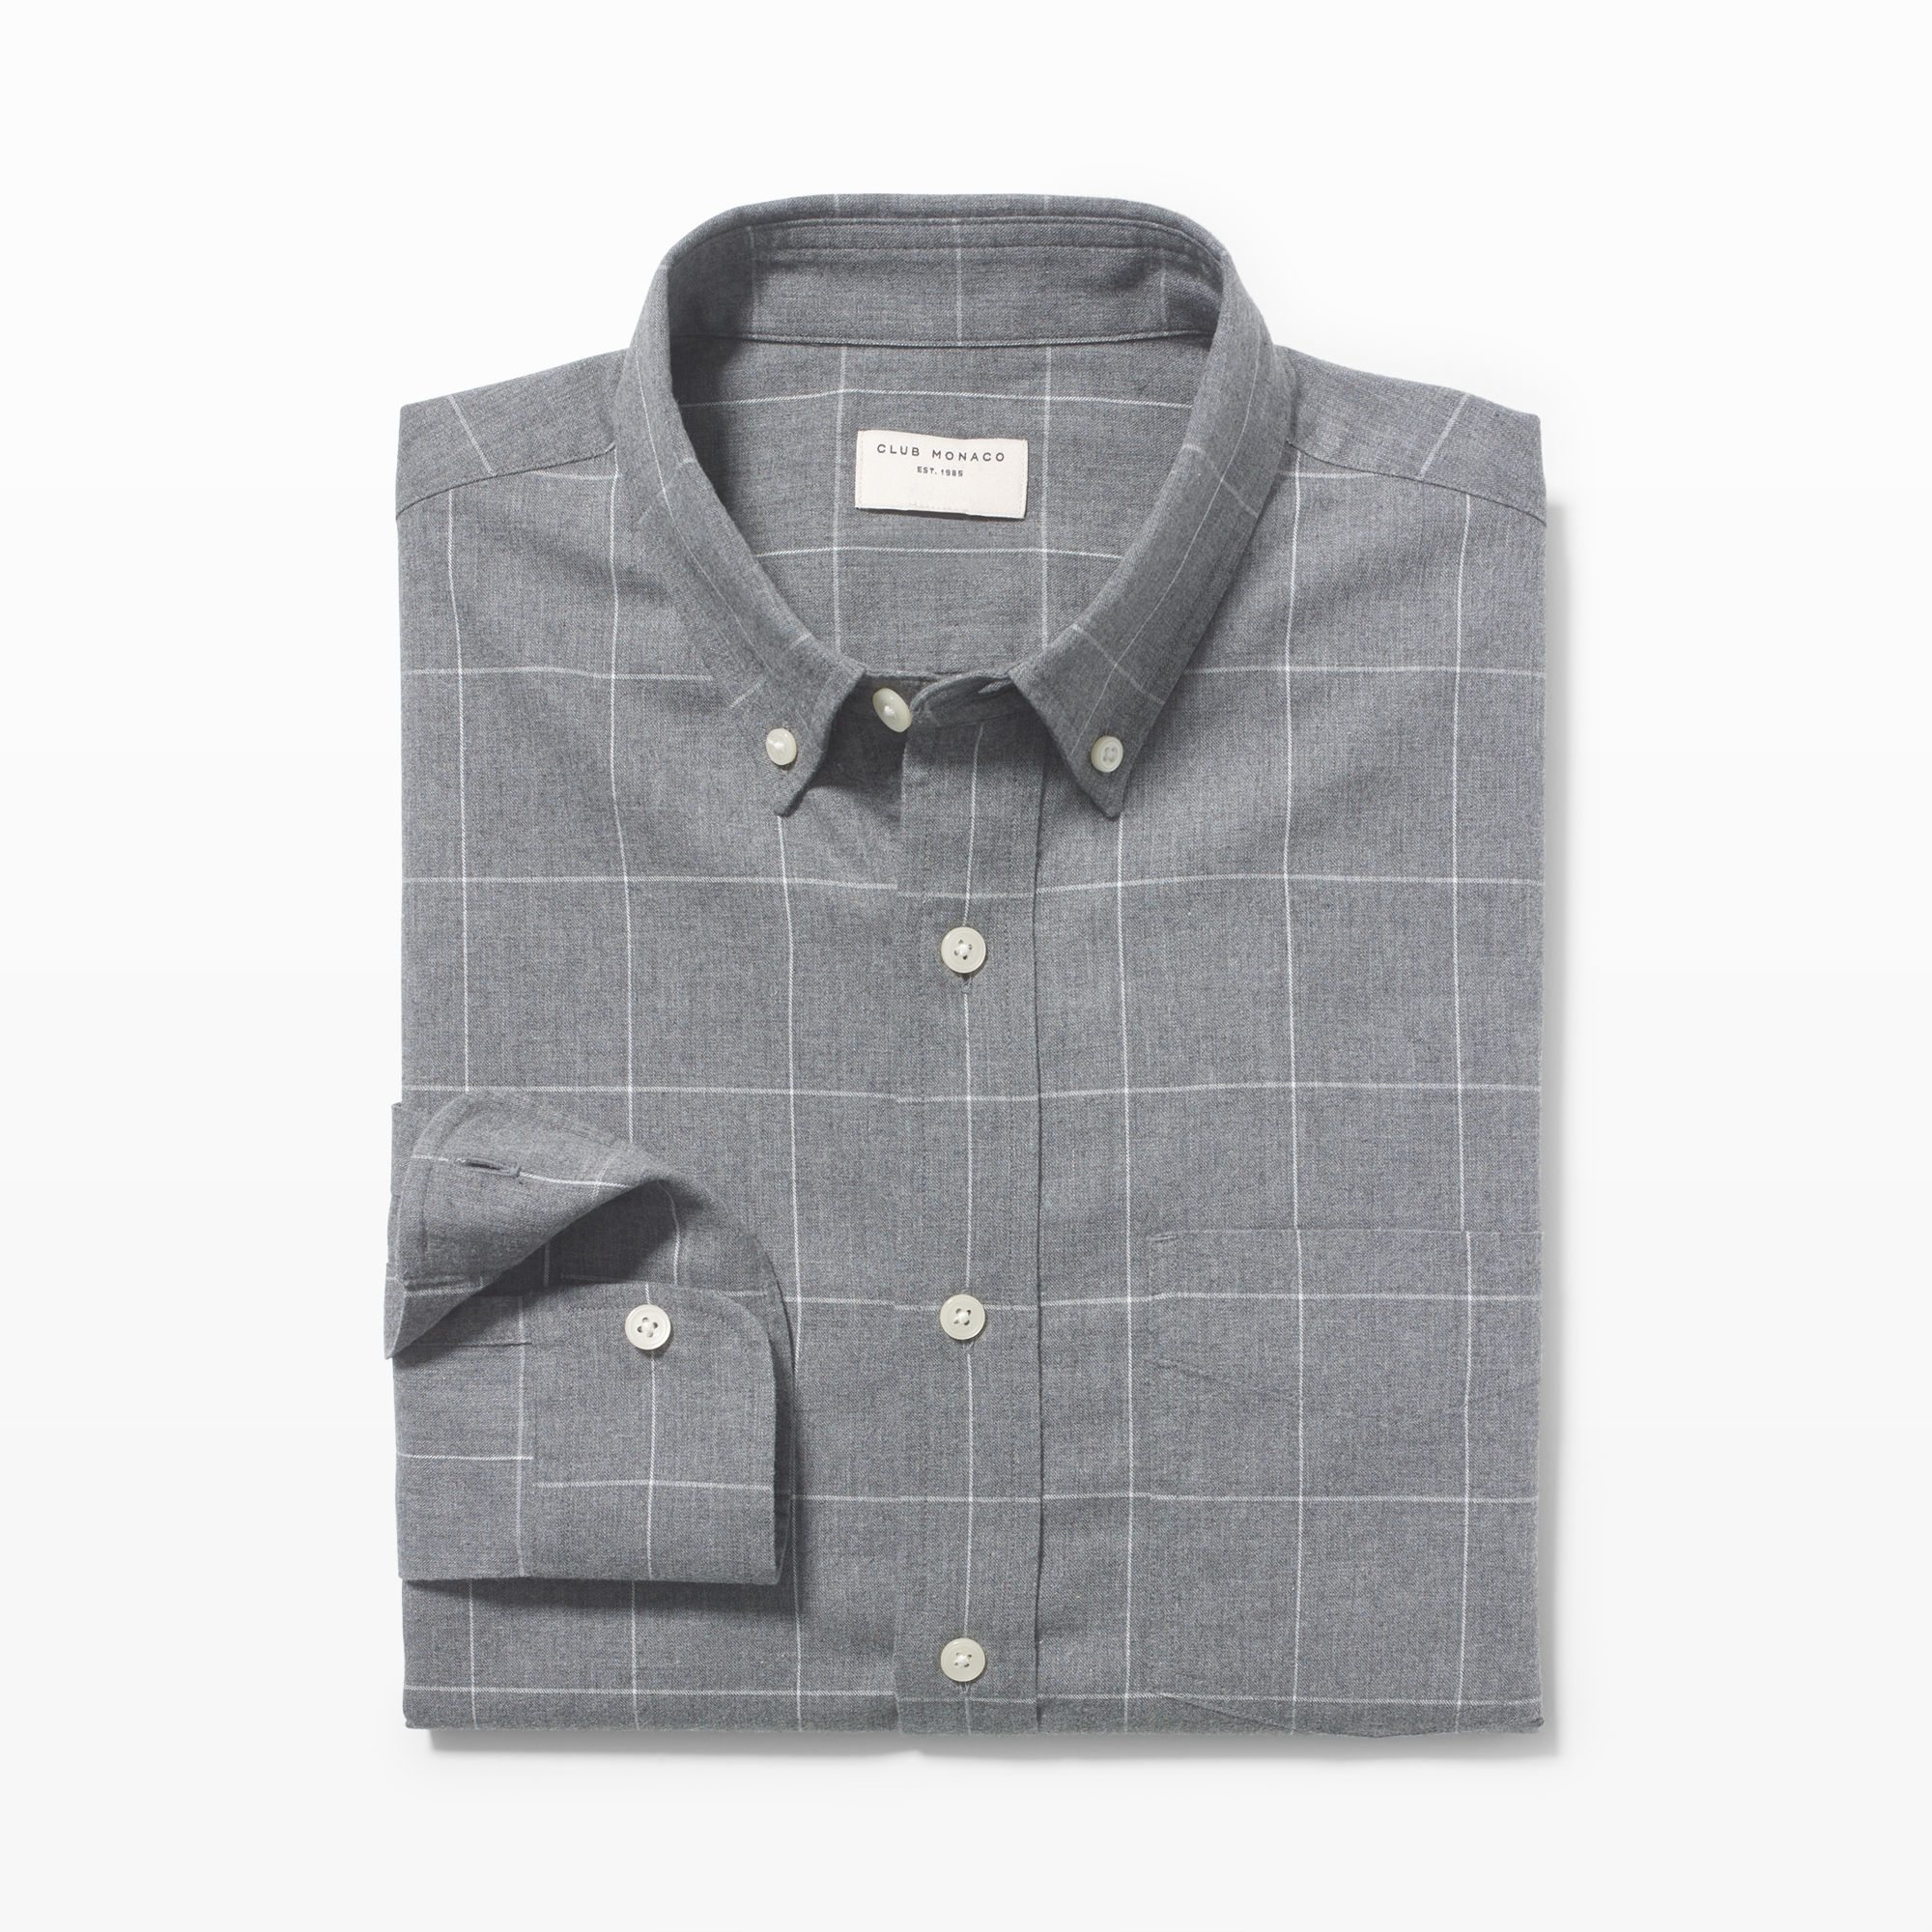 Lyst club monaco slim fit flannel check shirt in gray for Trim fit flannel shirts